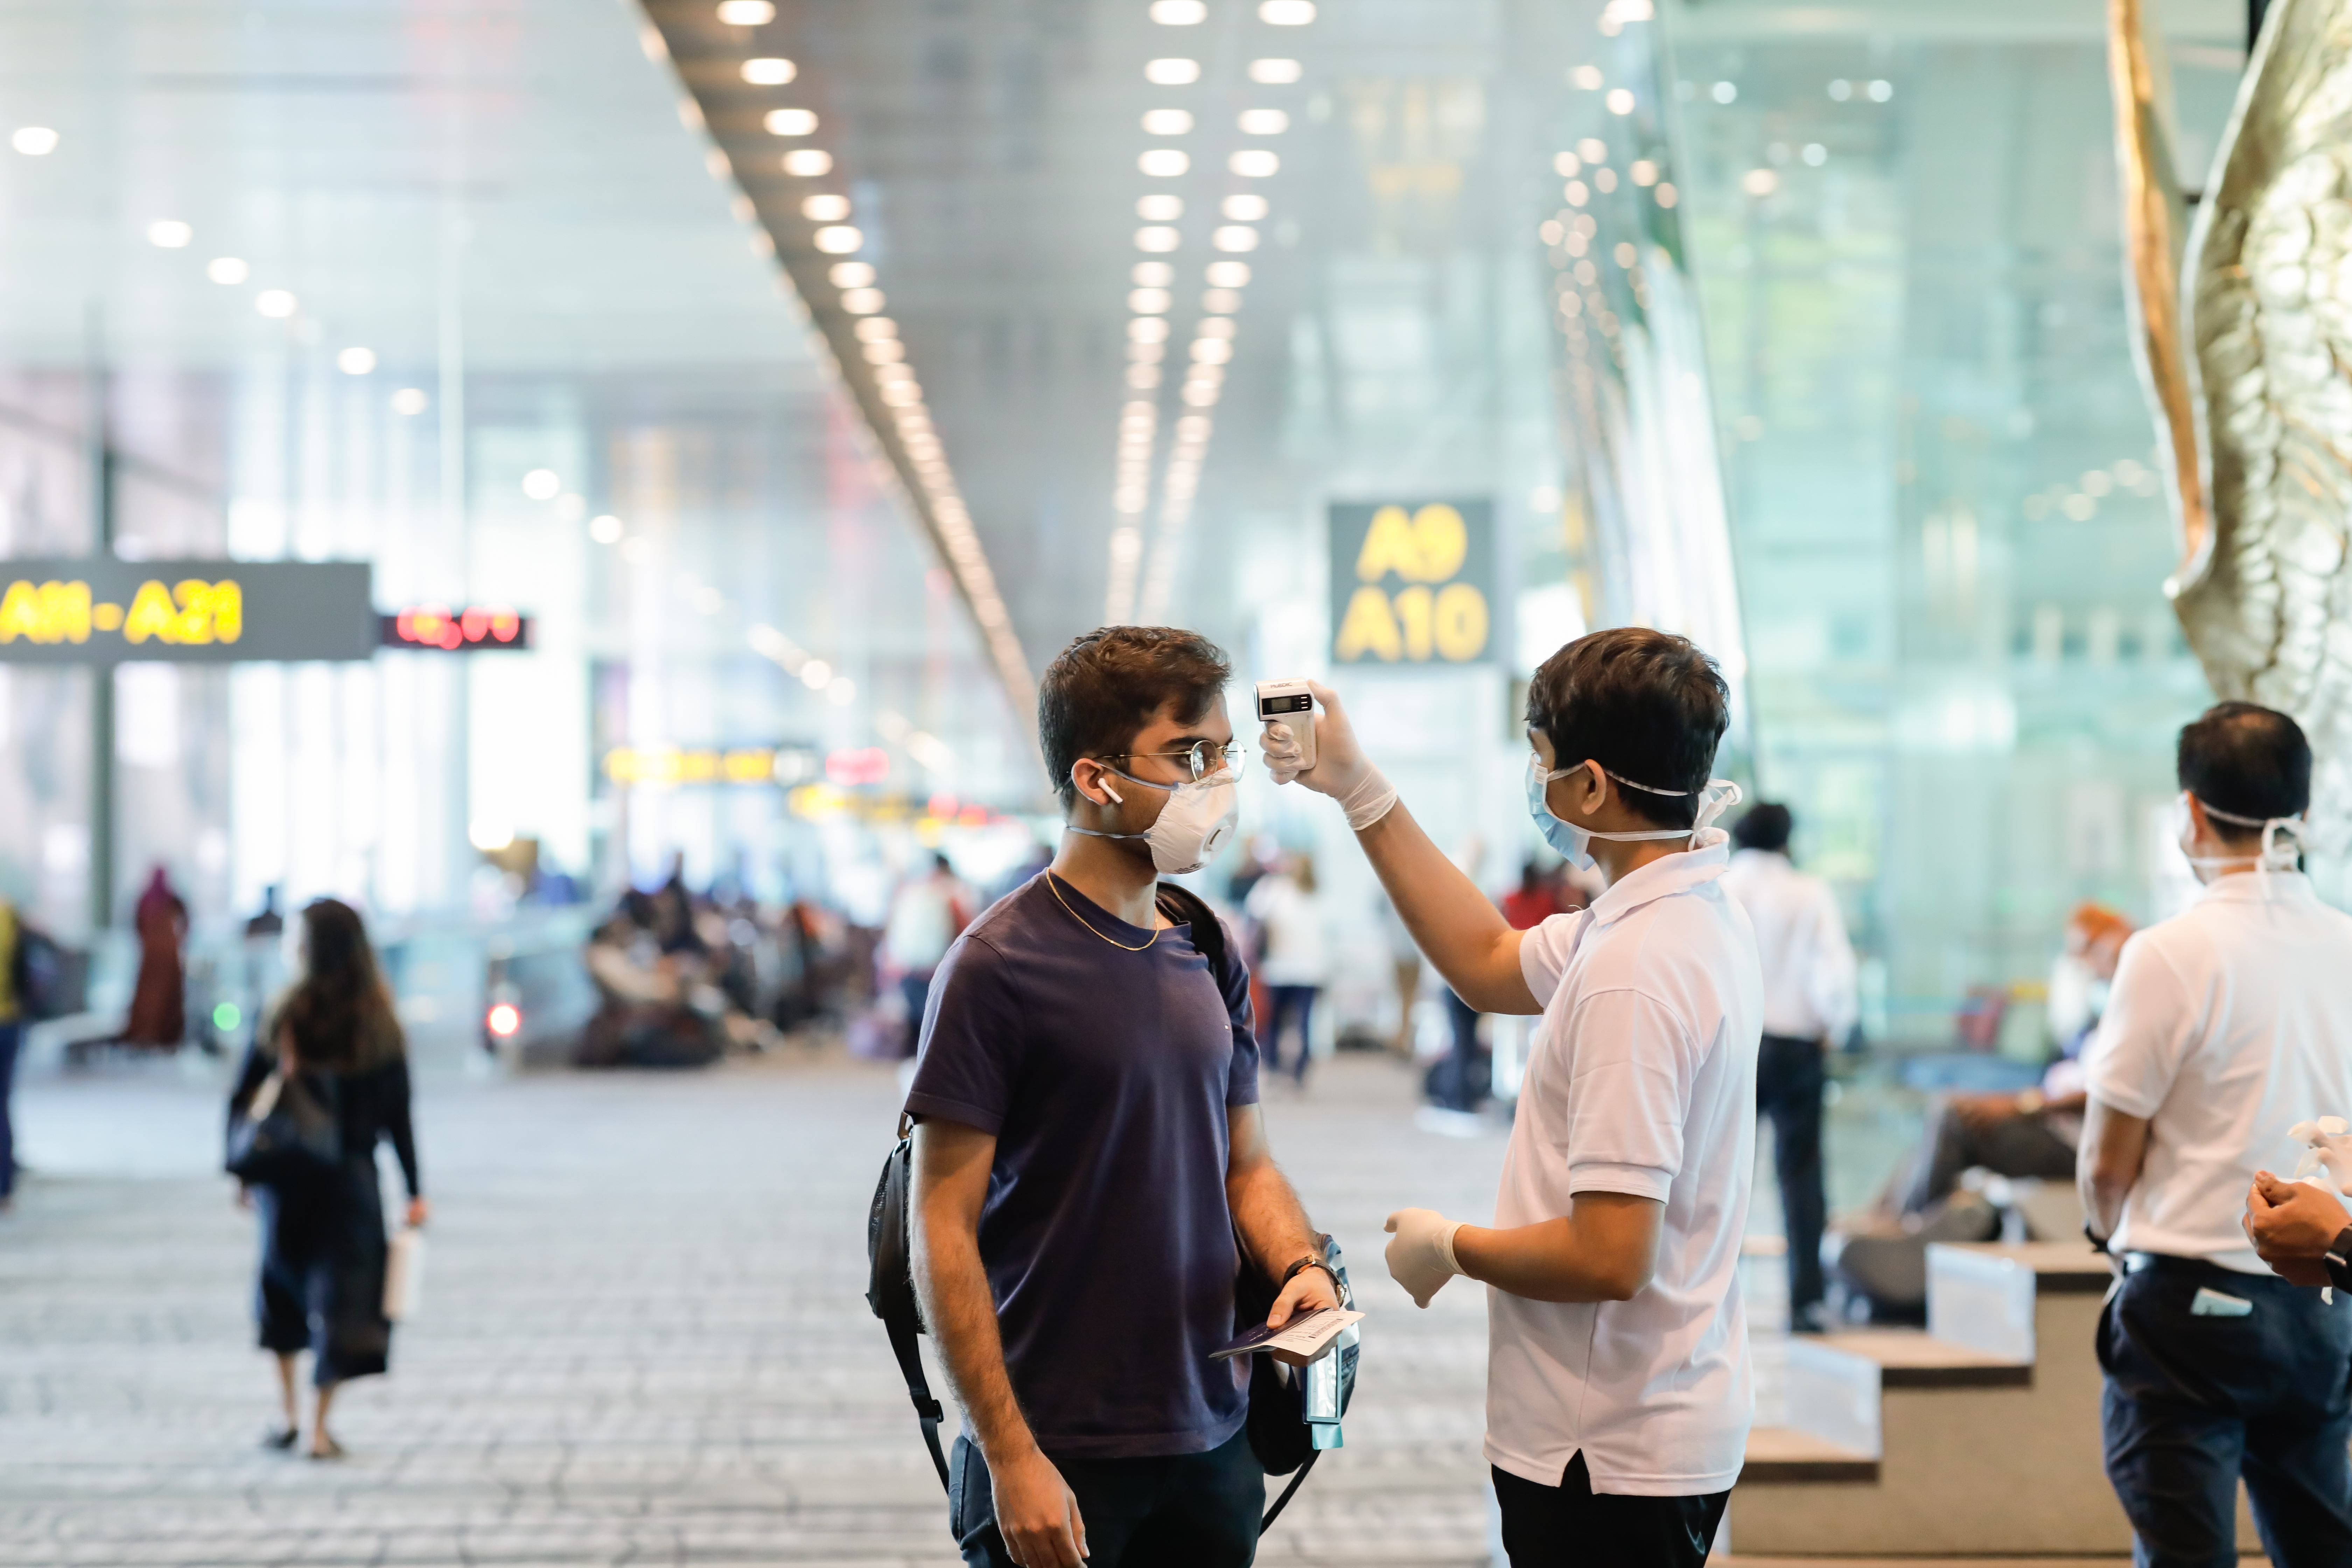 traveller numbers fell 80.6 per cent to about 42.1 million last year as countries imposed strict border control measures.